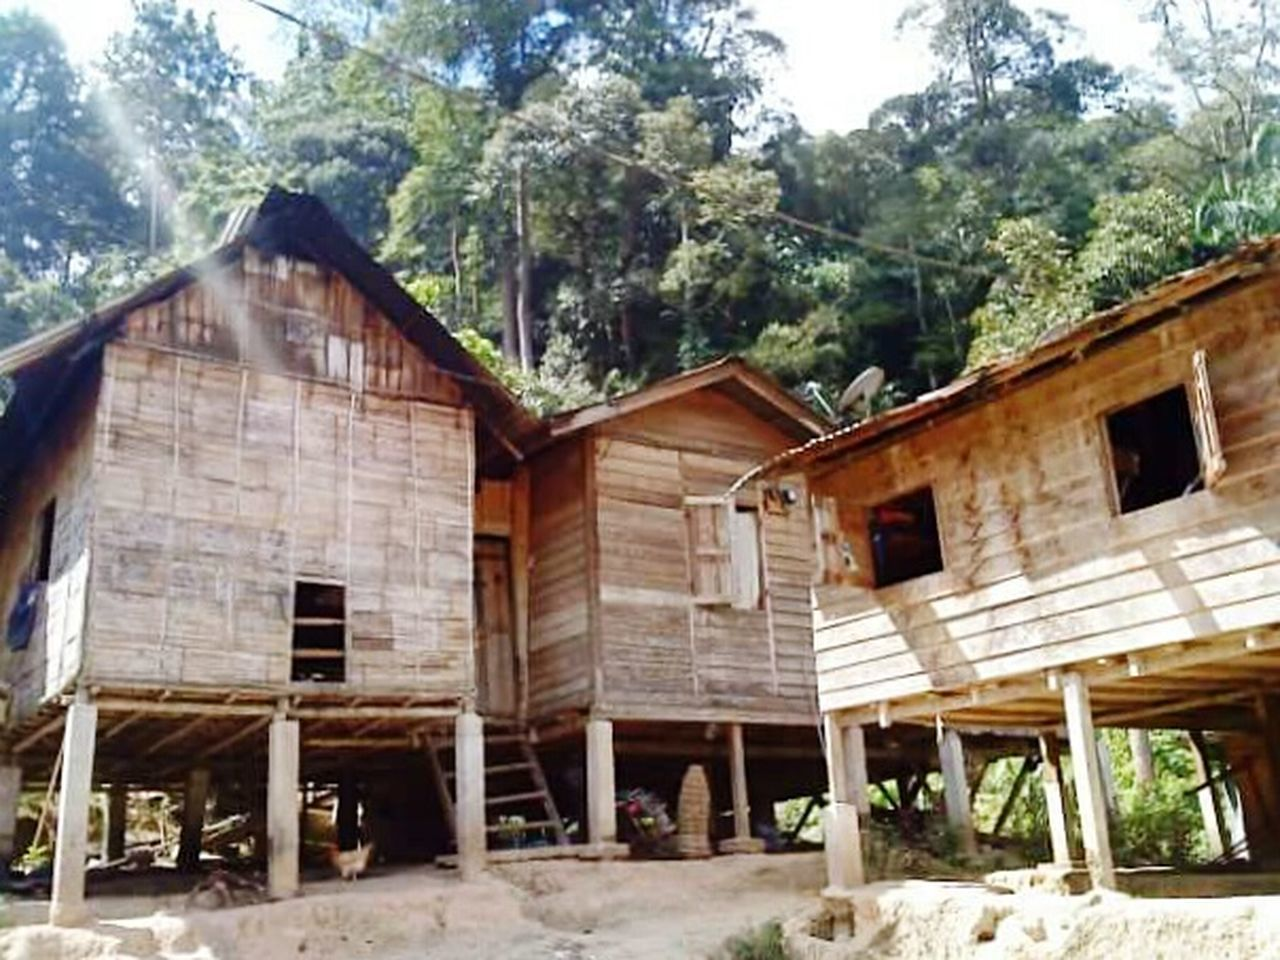 Wooden aborigines houses in Cameron Highlands, Pahang. Wooden House Aborigine Village Peaceful Place Foresthills Jungle Life Wood House Wooden Building Wooden Structure Forest Cameron Highlands Pahang Pahang, Malaysia Malaysia